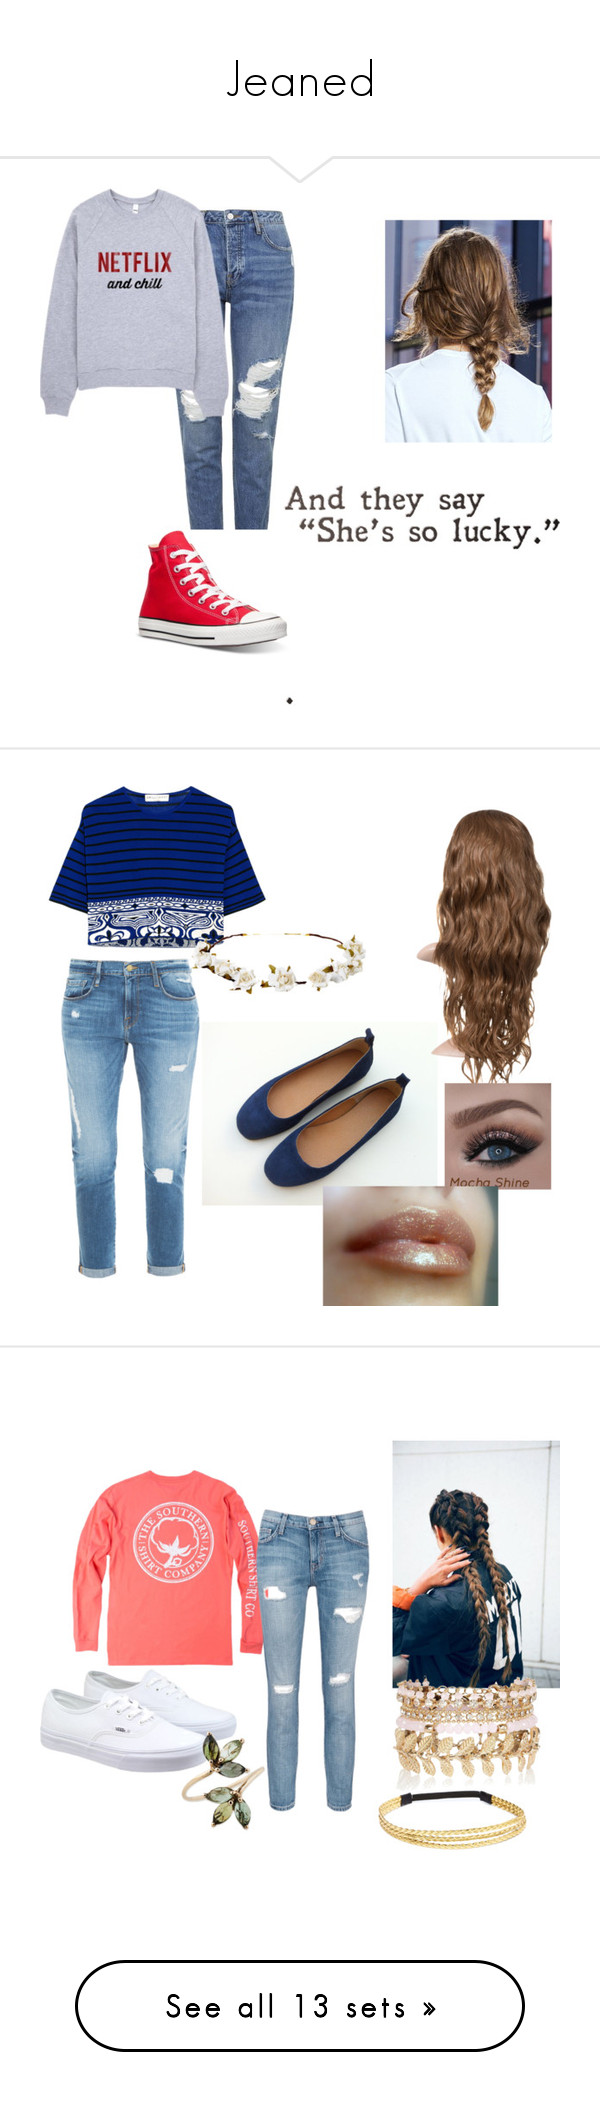 """""""Jeaned"""" by sephorawalker ❤ liked on Polyvore featuring beauty, Topshop, Converse, Emilio Pucci, Frame Denim, Cult Gaia, women's clothing, women, female and woman"""